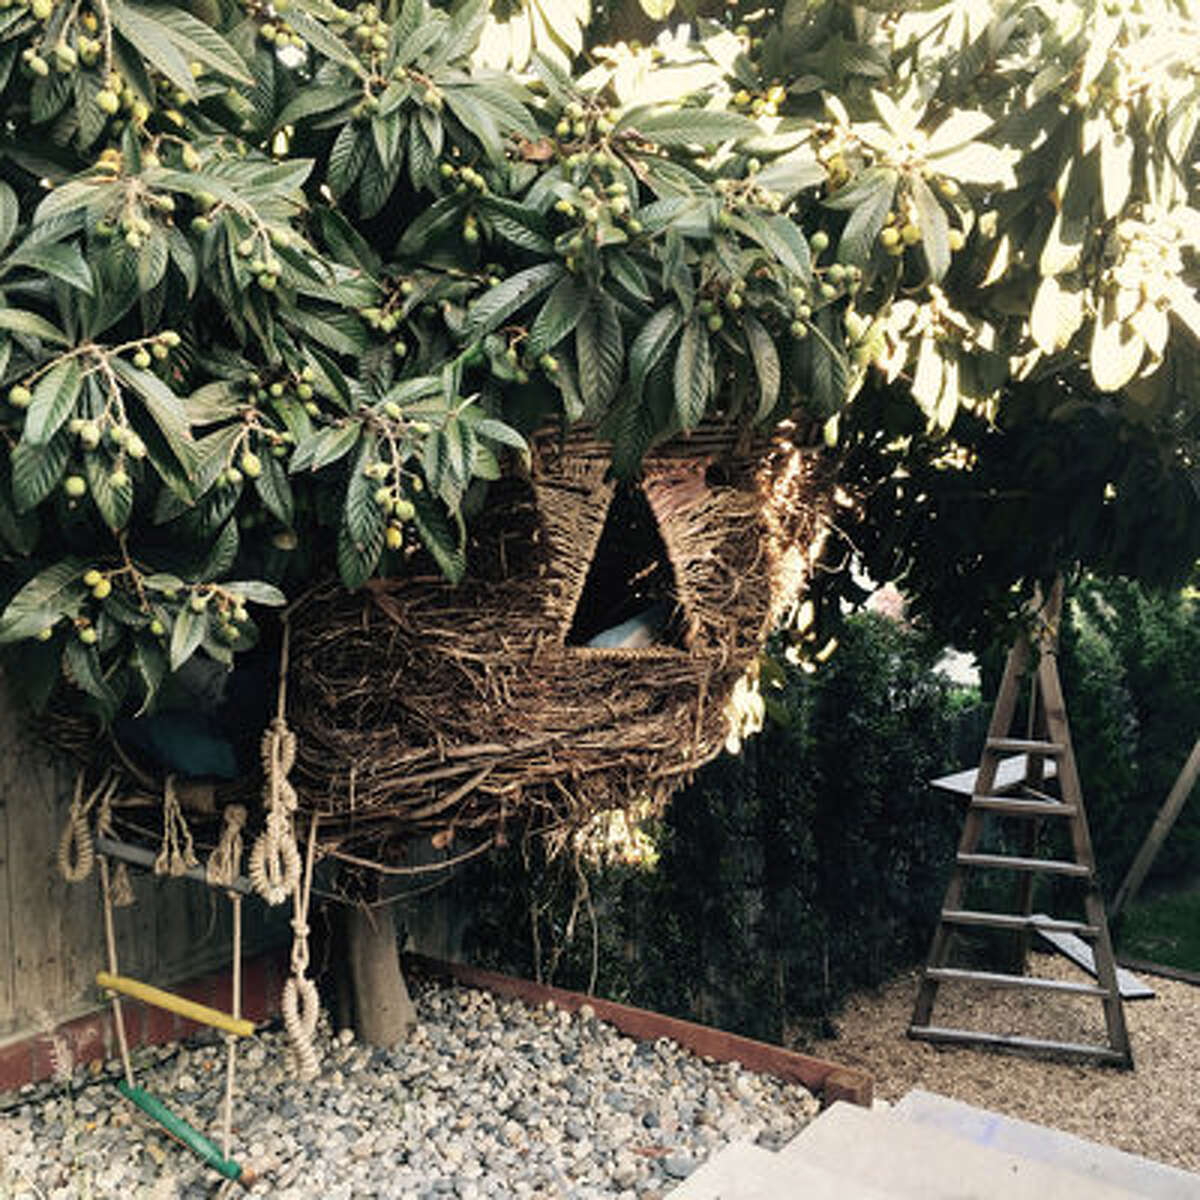 Backyard willow nest As an East Coast native, Sari Lehrer had one opinion when it came to backyards: